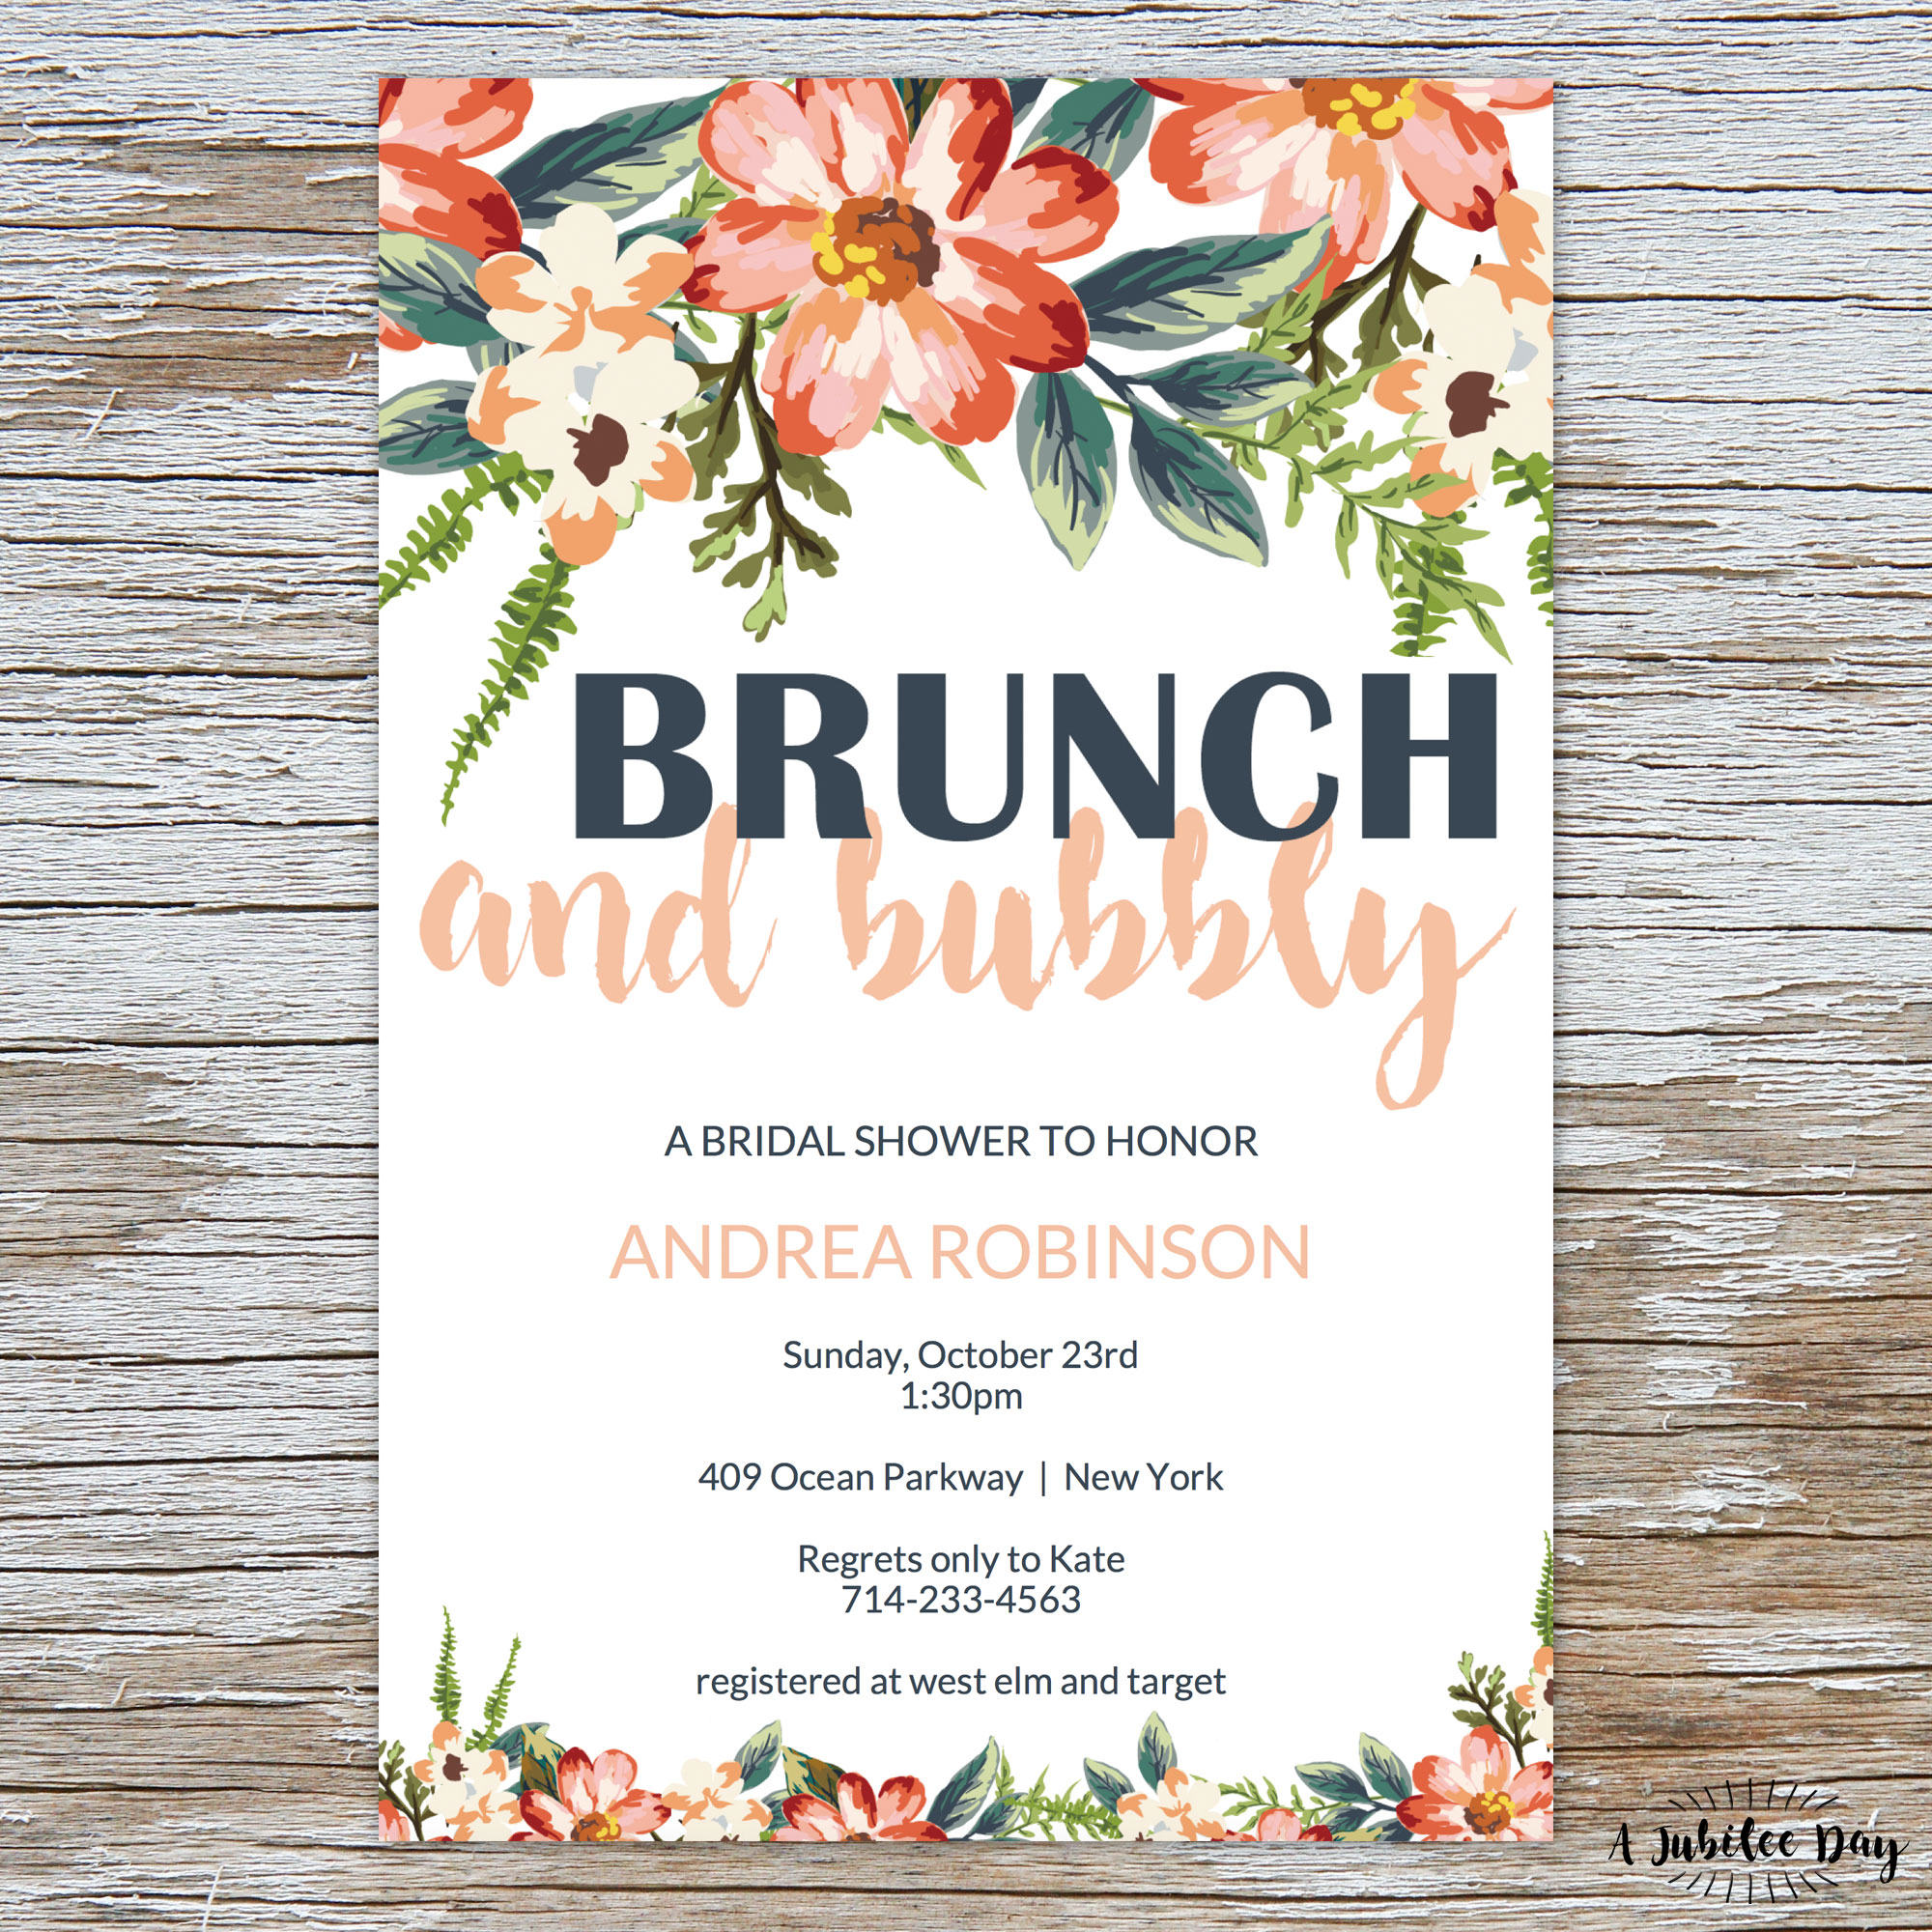 50bc9d15e378 Brunch and Bubbly Bridal Shower Invitation - A Jubilee Day